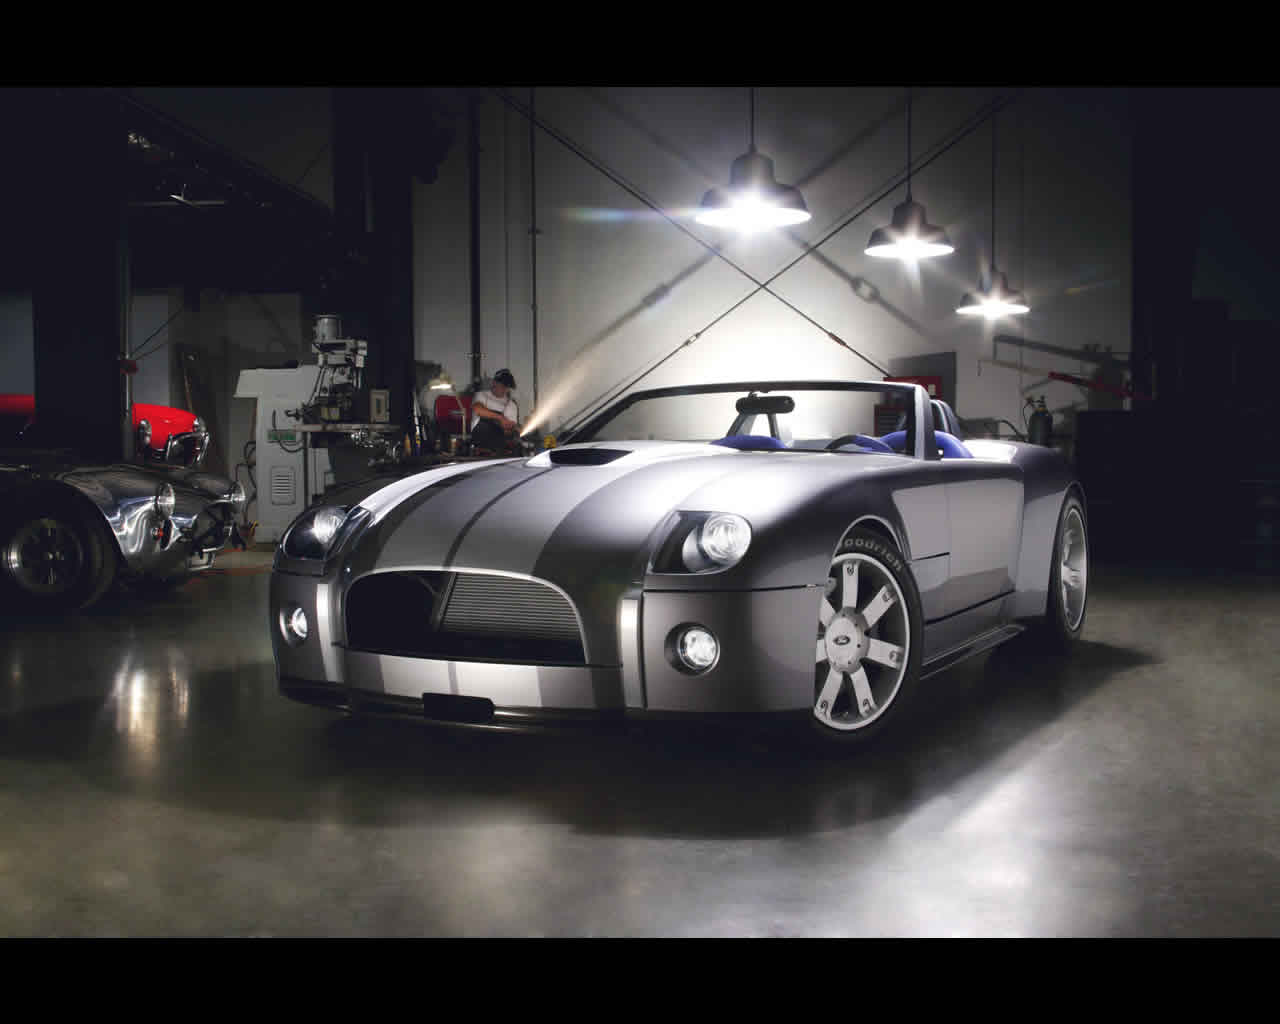 Ford shelby cobra concept ford shelby cobra concept